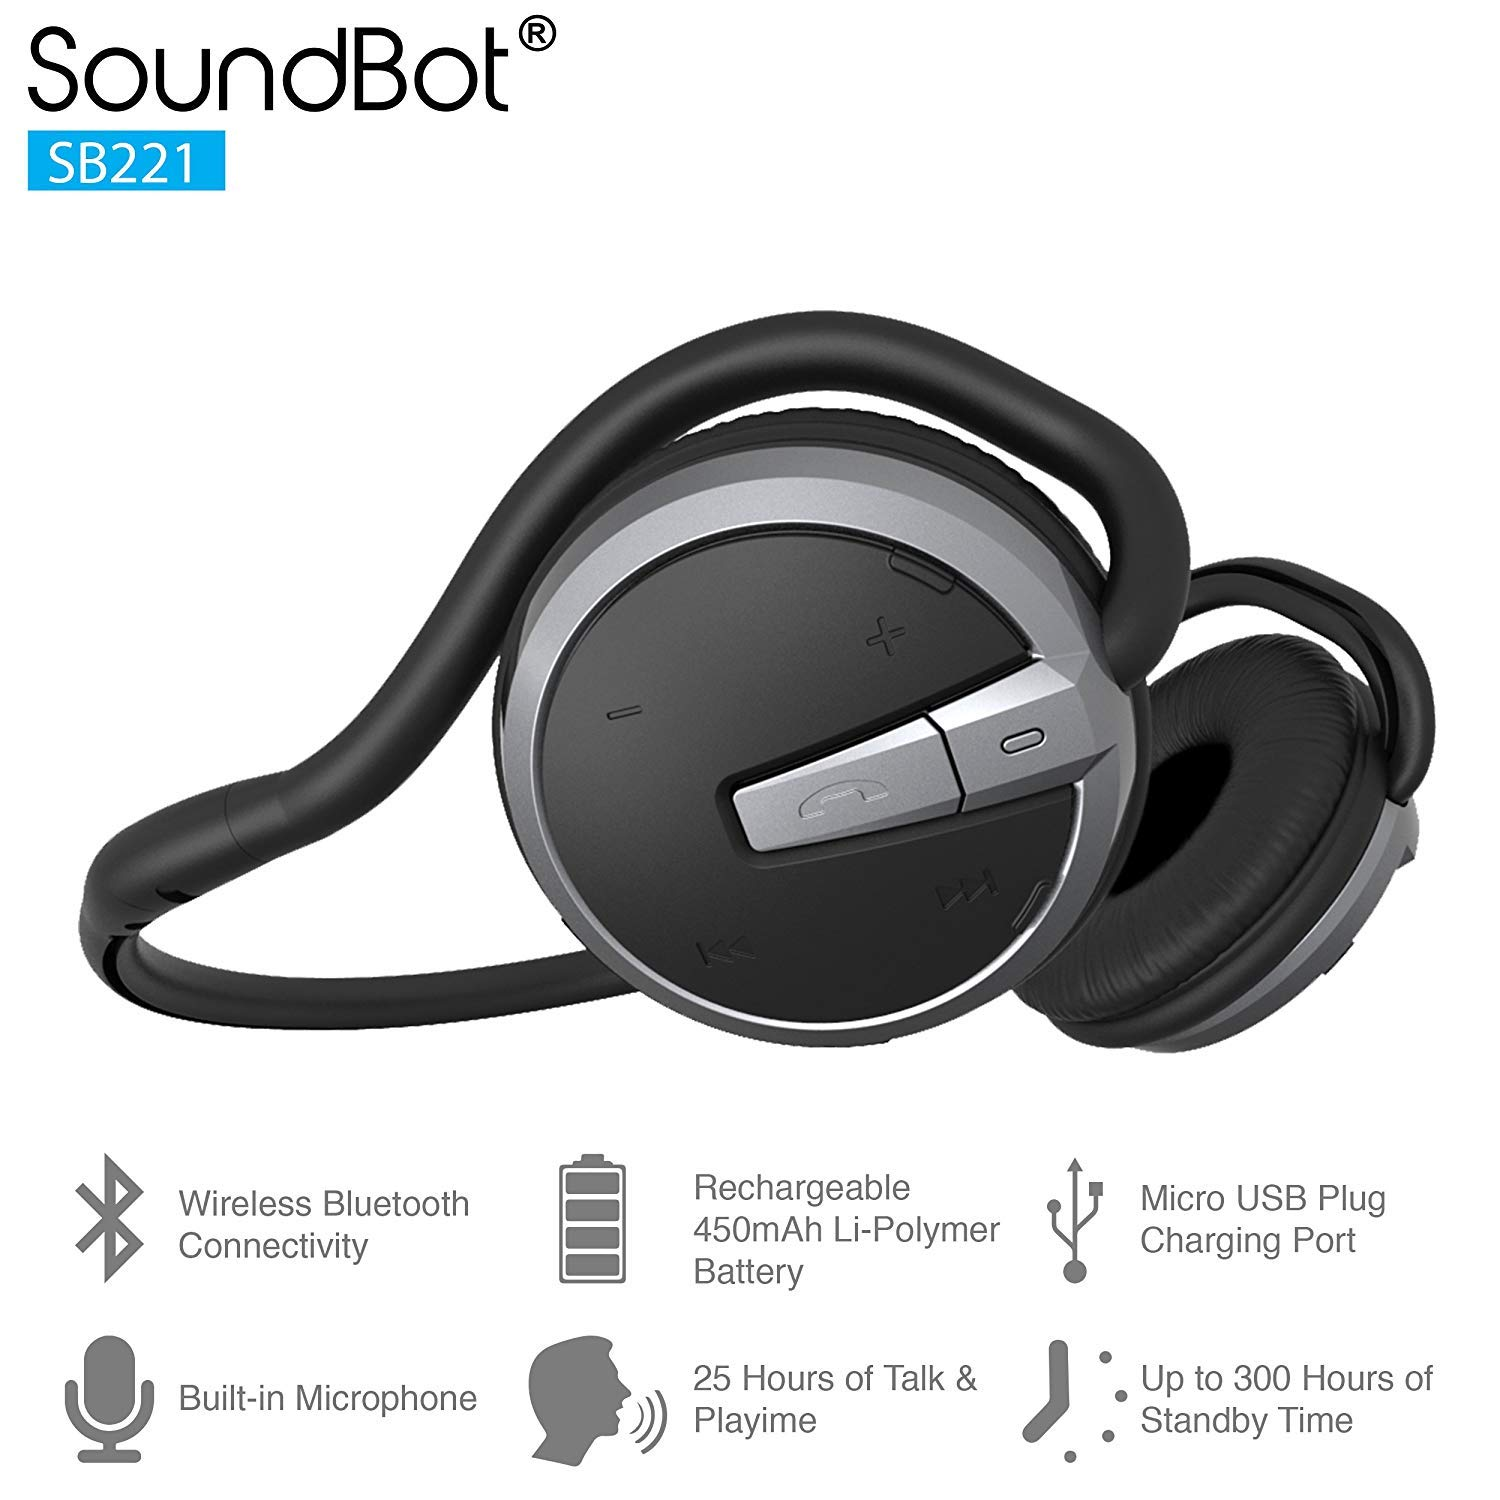 SoundBot SB221 HD Wireless Bluetooth 4.0 Headset Sports-Active Headphone for 20Hrs Music Streaming 25Hrs HandsFree Calling w Sweat Resistant Ergonomic Secure-Fit Design Voice Command Support